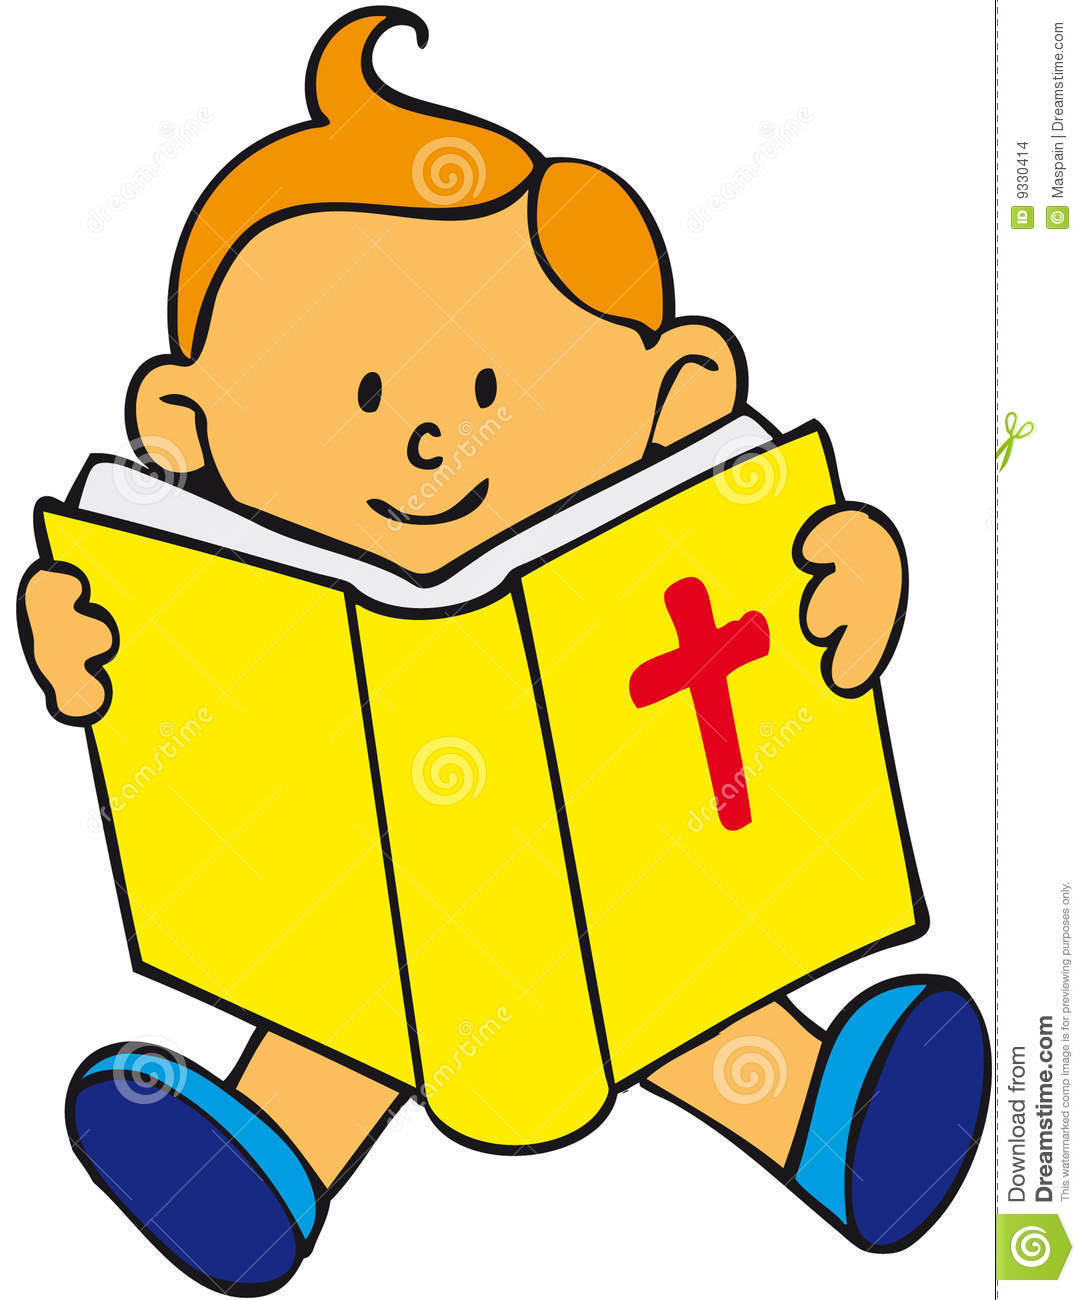 Boys clipart bible. Children free download best